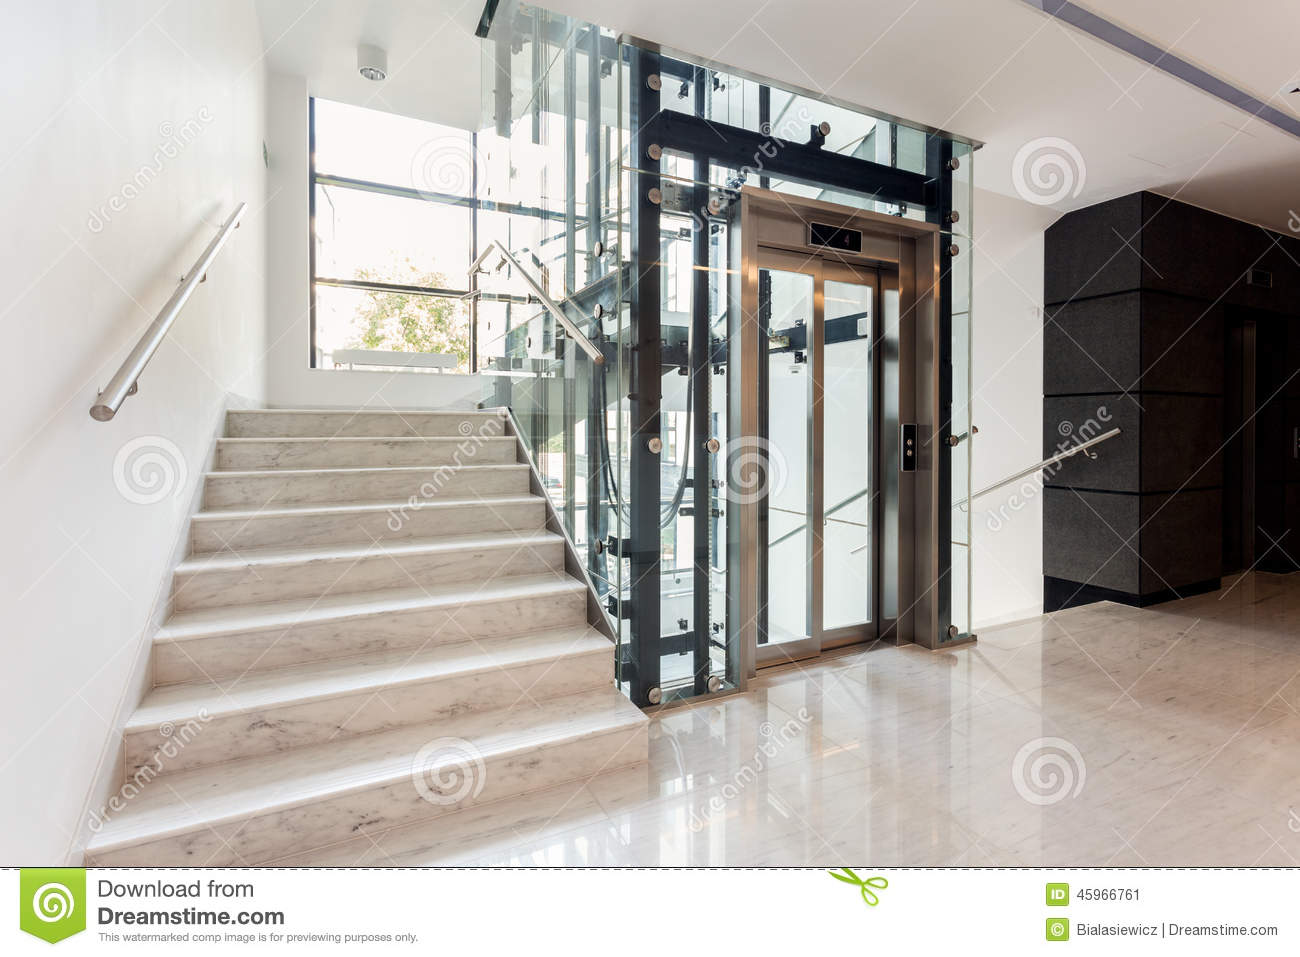 Download Hall With Staircase And Elevator Stock Image   Image Of Area,  Corporation: 45966761